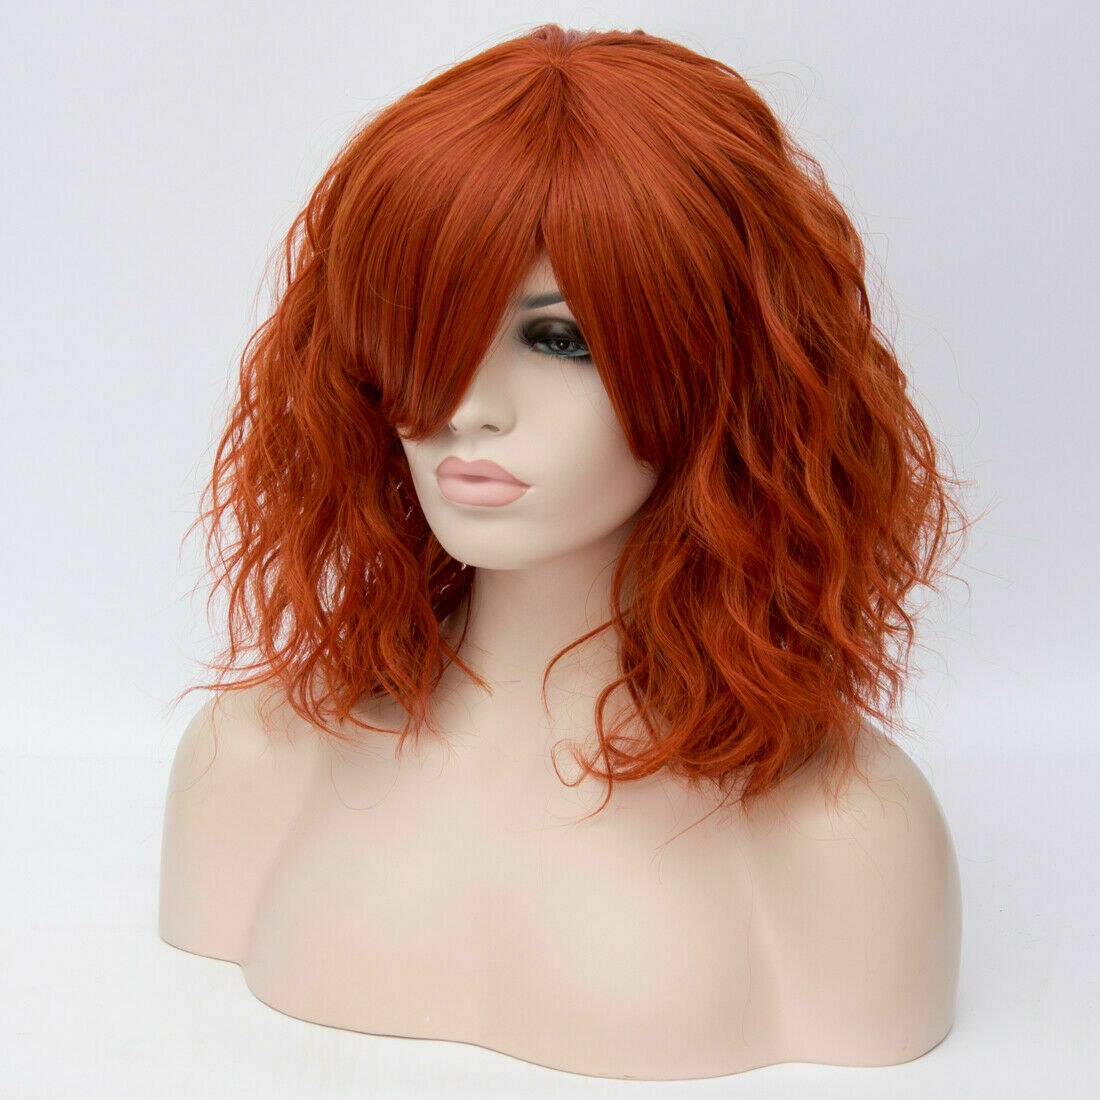 Lolita-Women-039-s-Short-Curly-Anime-Synthetic-Hair-Heat-Resistant-Cosplay-Party-Wig miniature 80